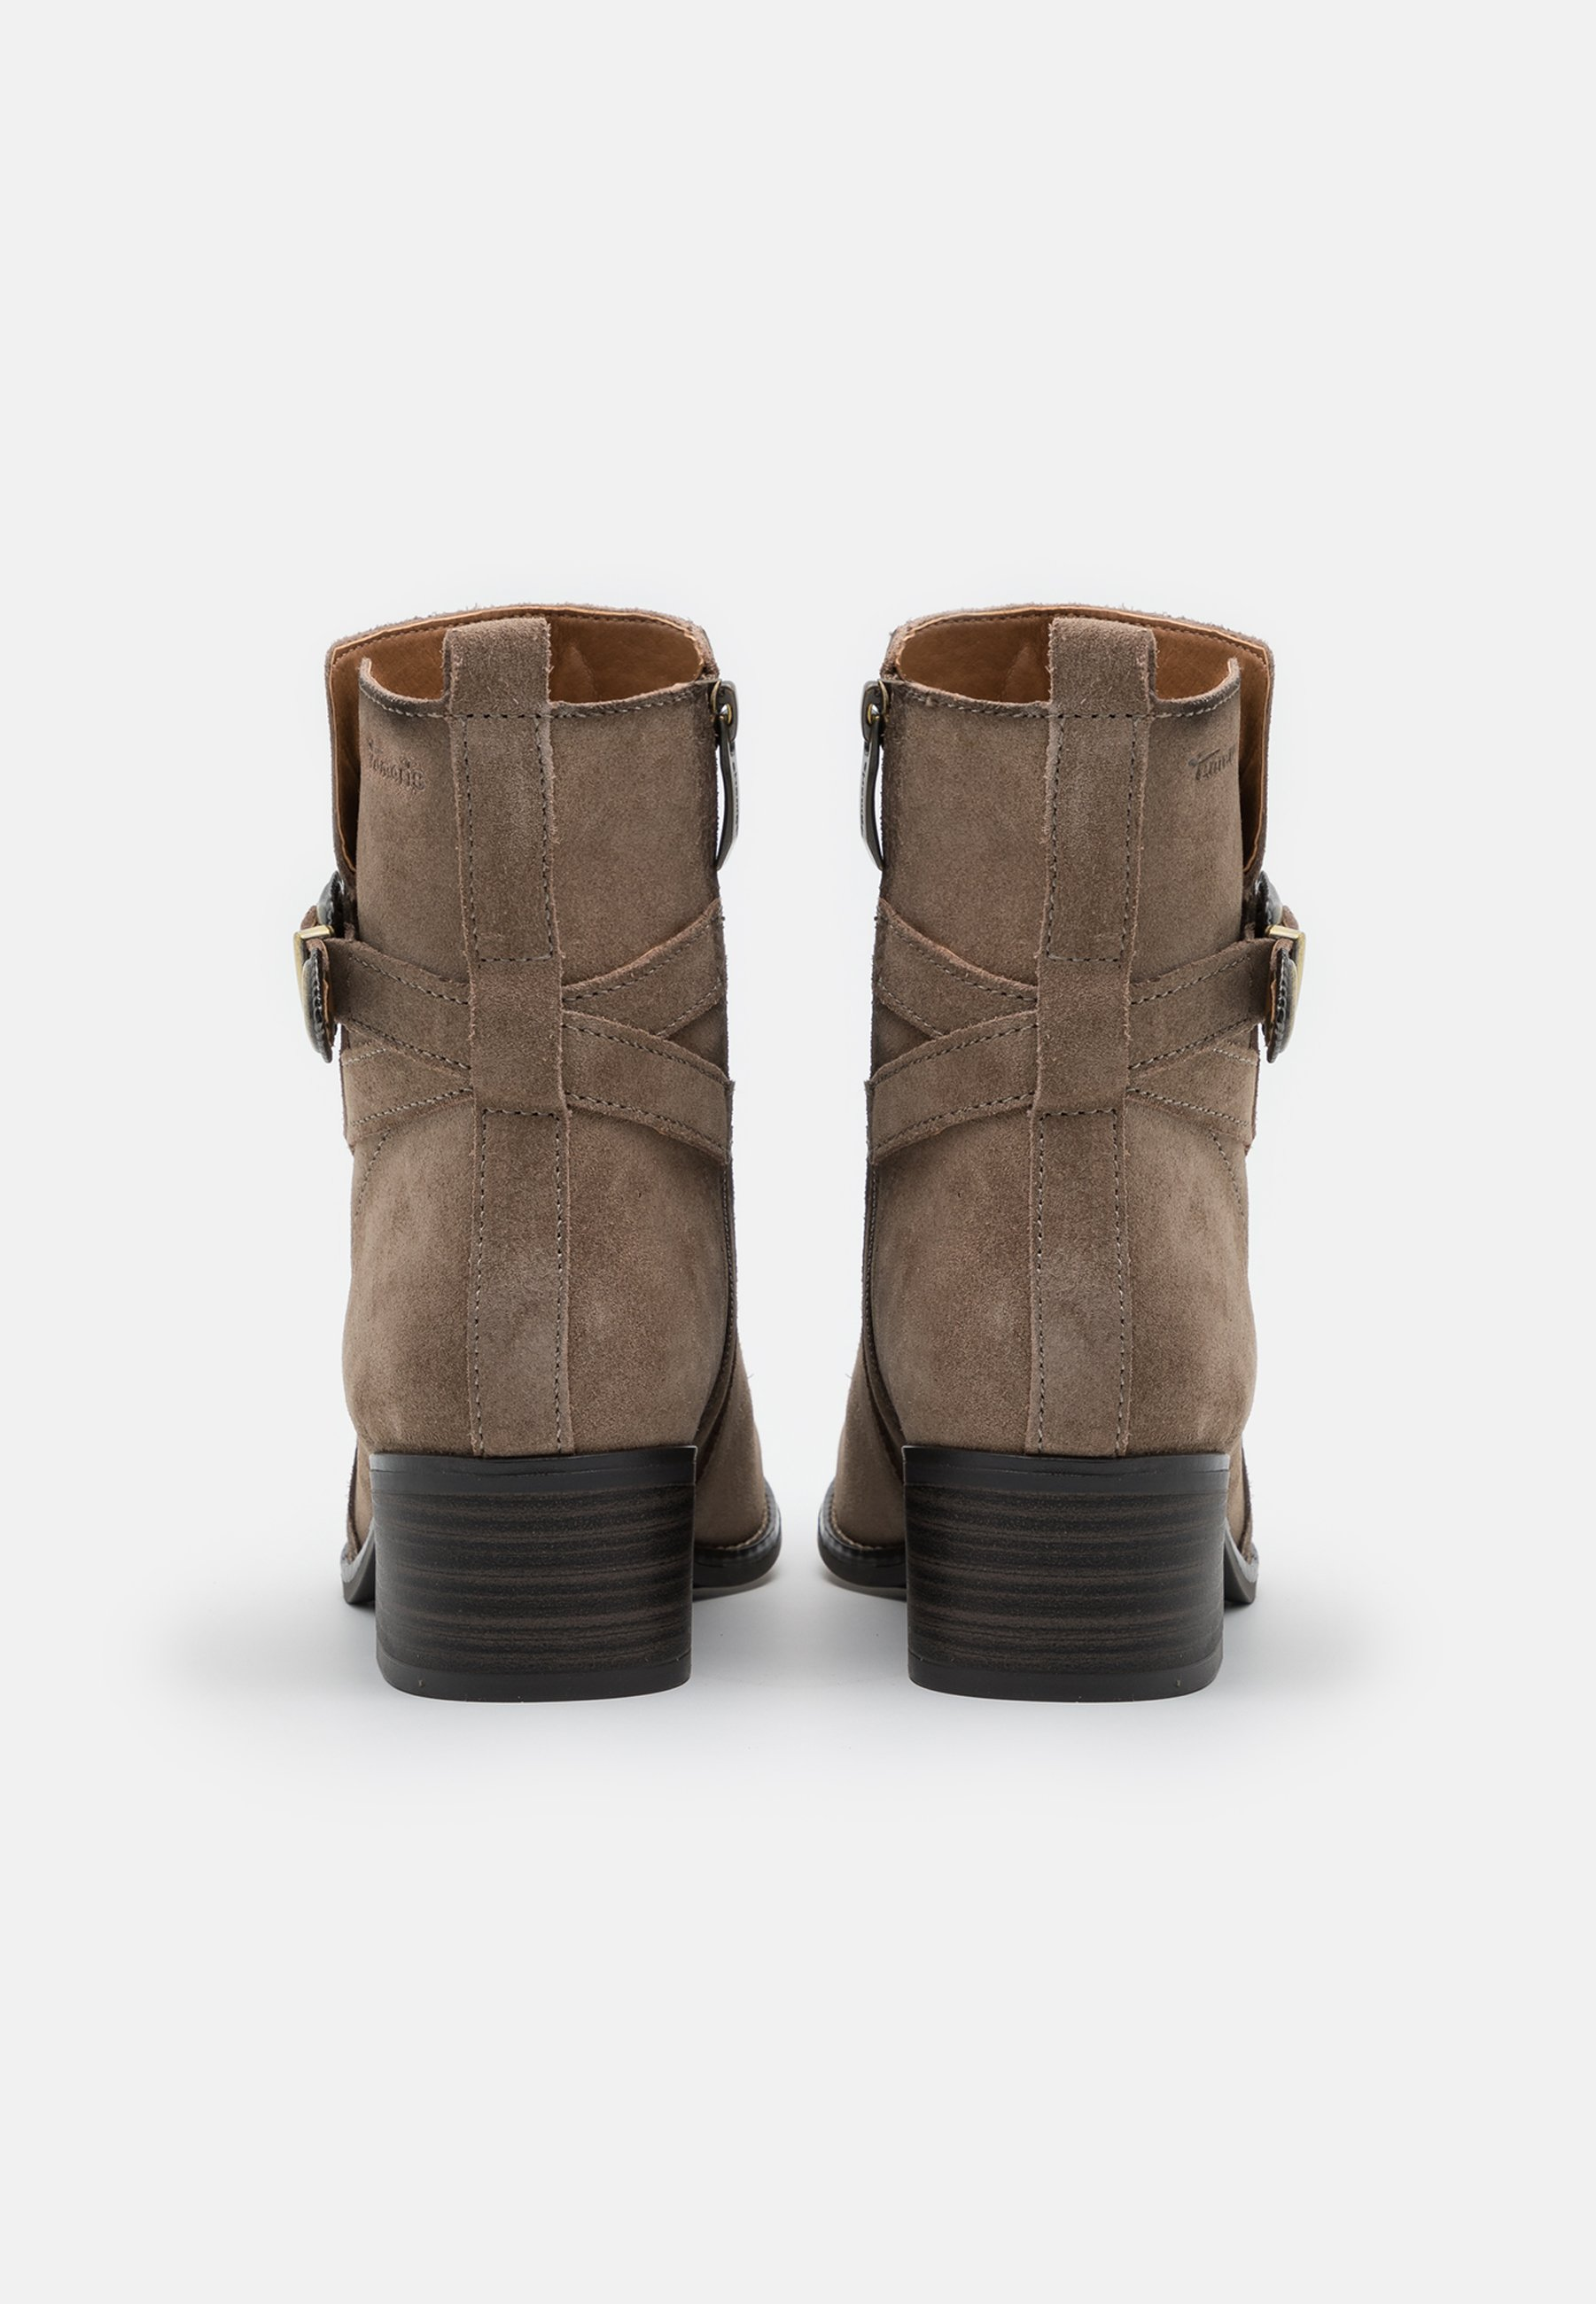 Tamaris Boots - Stiefelette Taupe